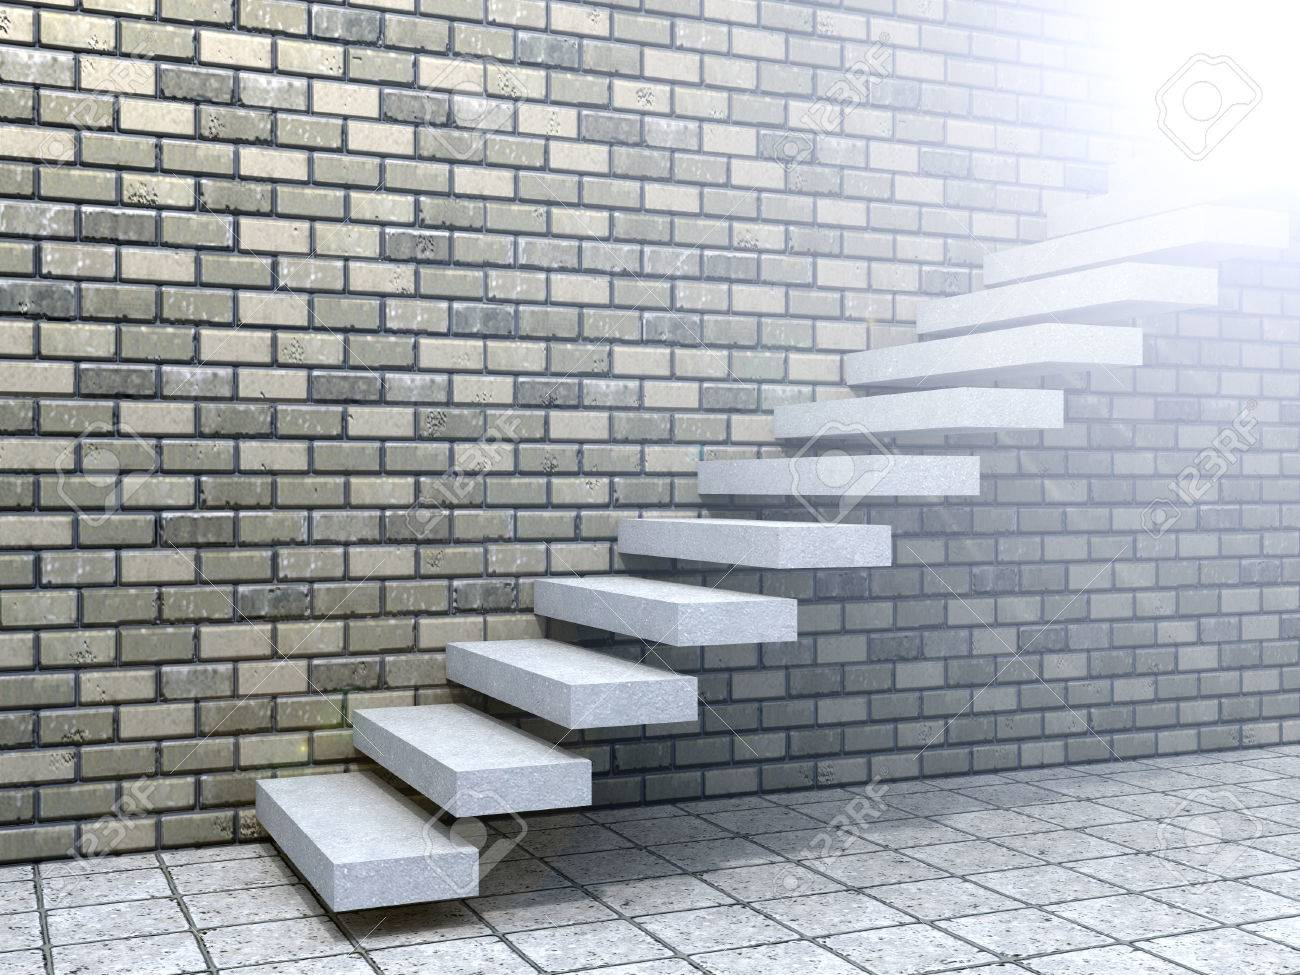 Conceptual White Stone Or Concrete Stair Or Steps Near A Brick Wall  Background Stock Photo